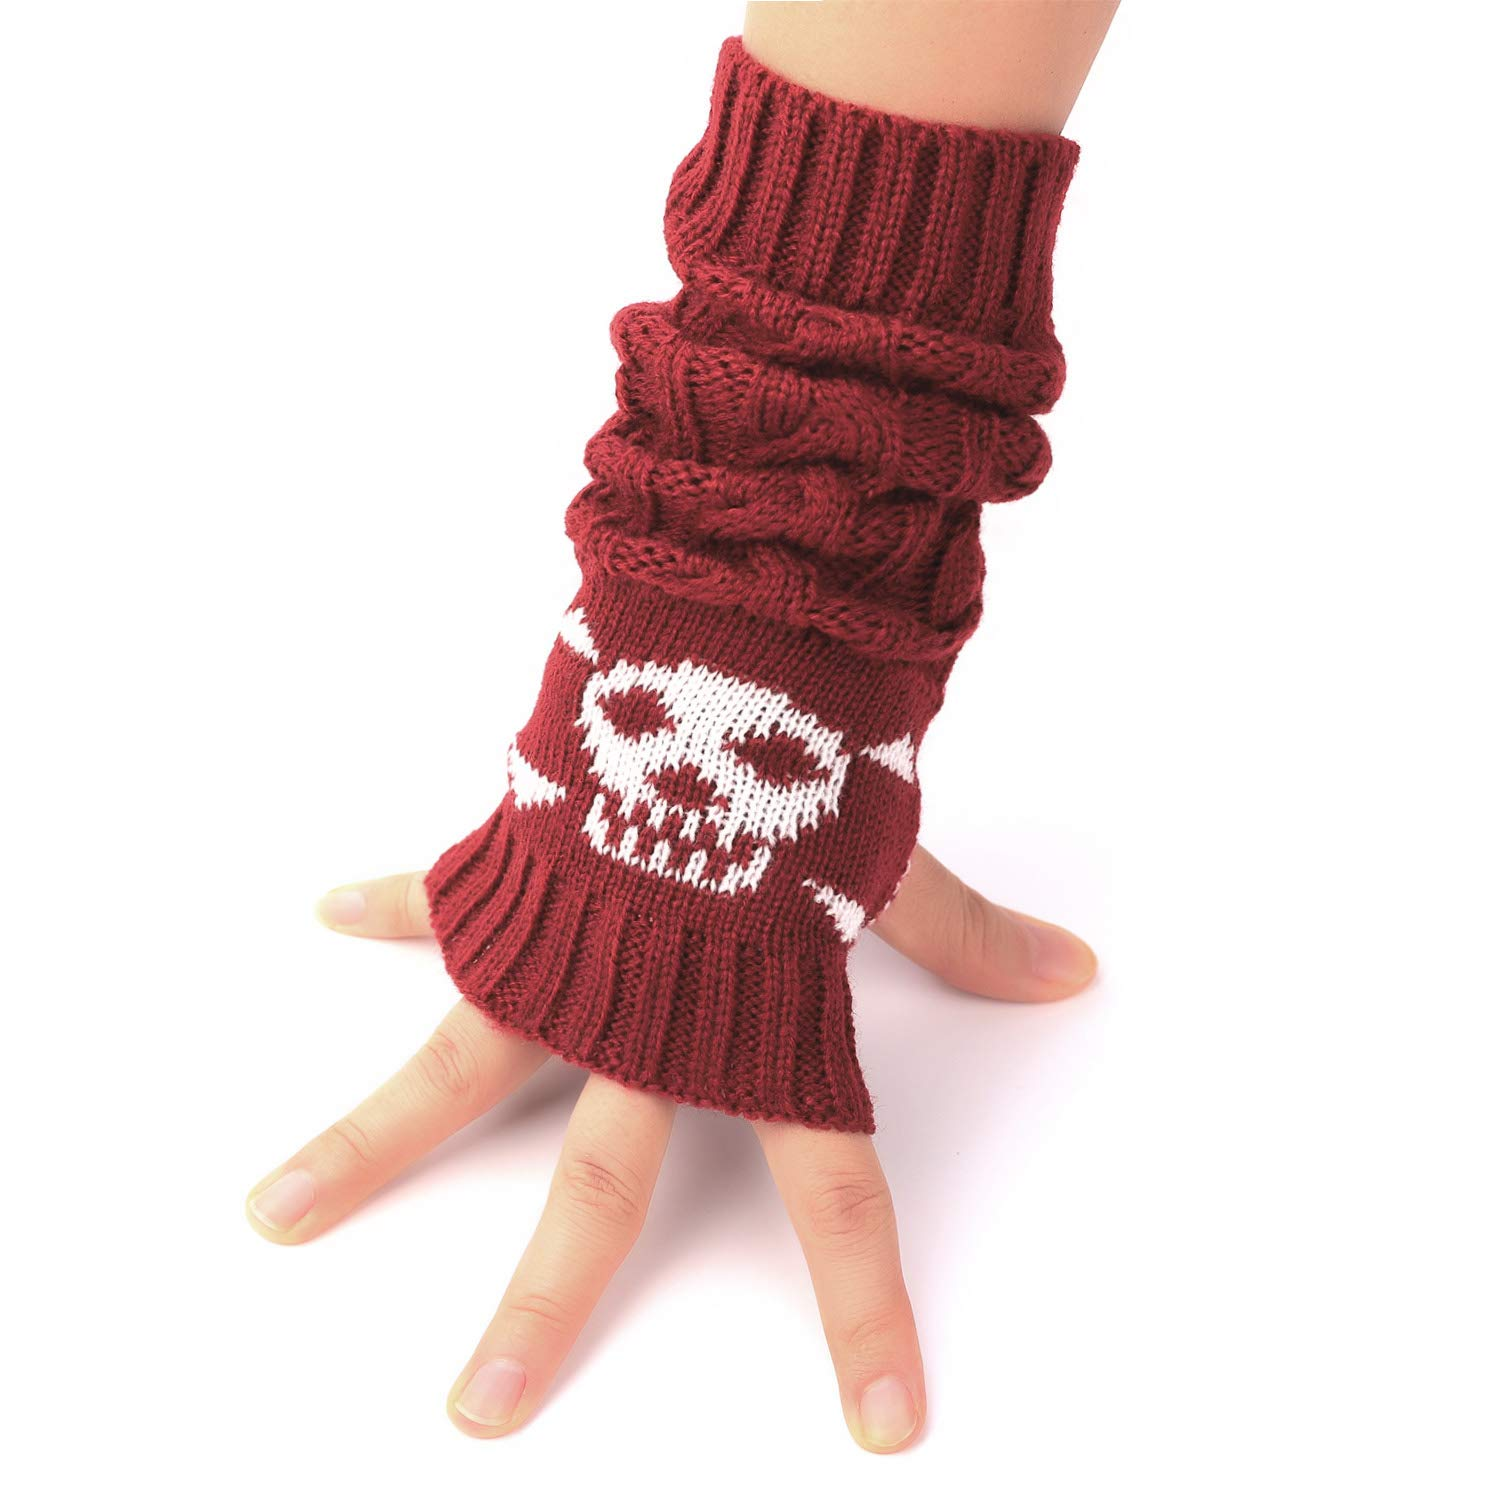 Flammi Cable Knit Fingerless Arm Warmers Skull Thumb Hole Gloves Mittens F Flammi